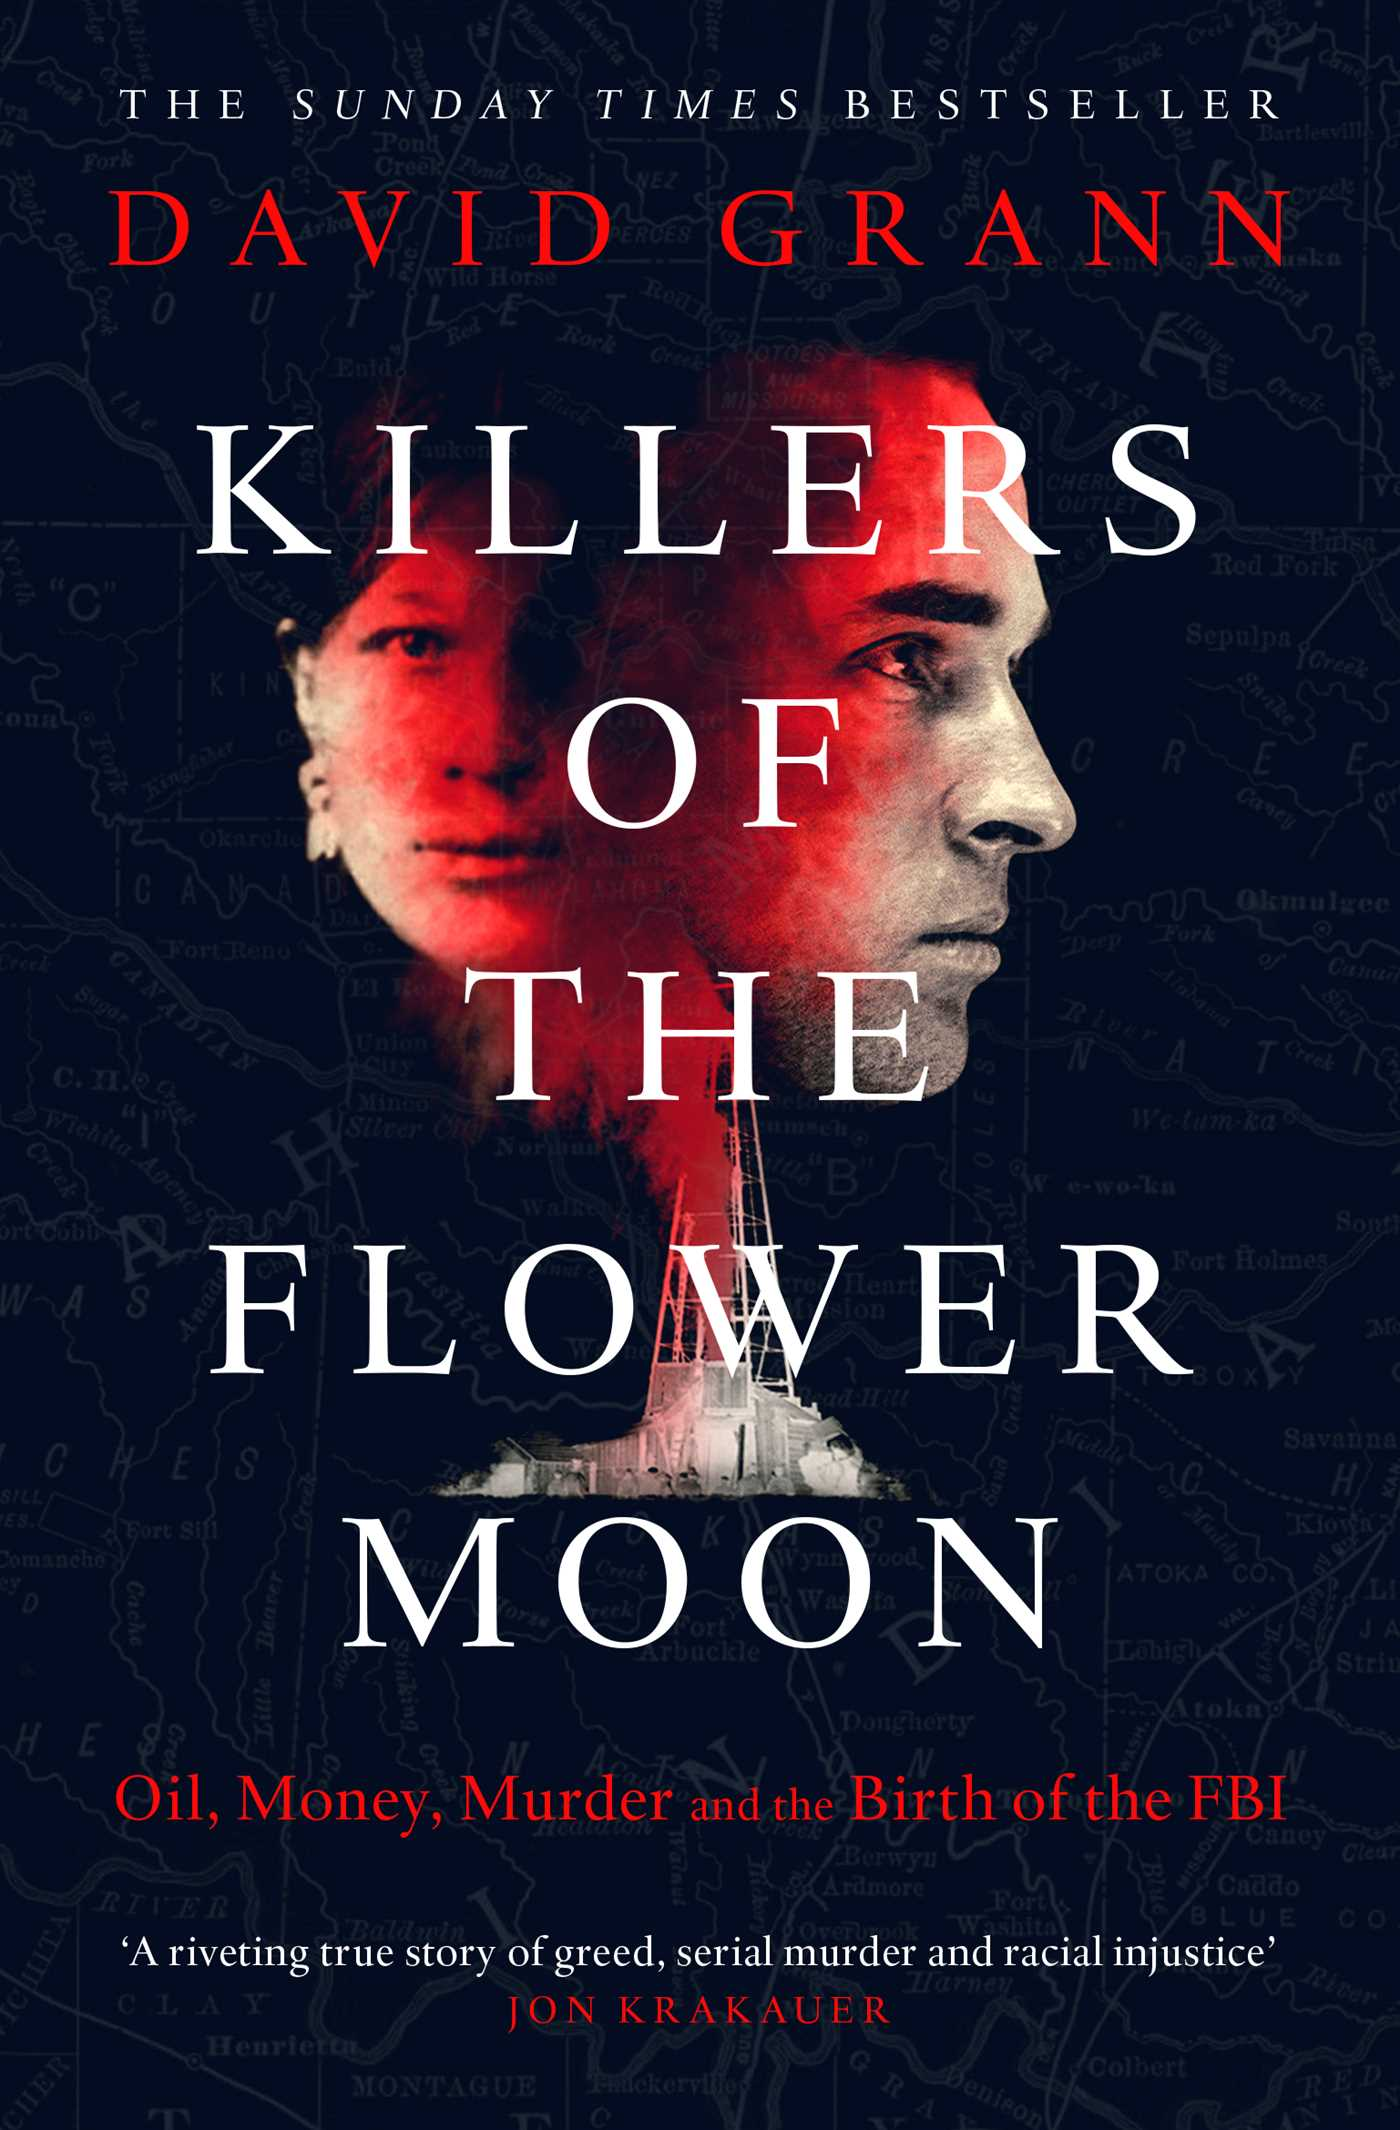 Killers of the flower moon 9780857209030 hr